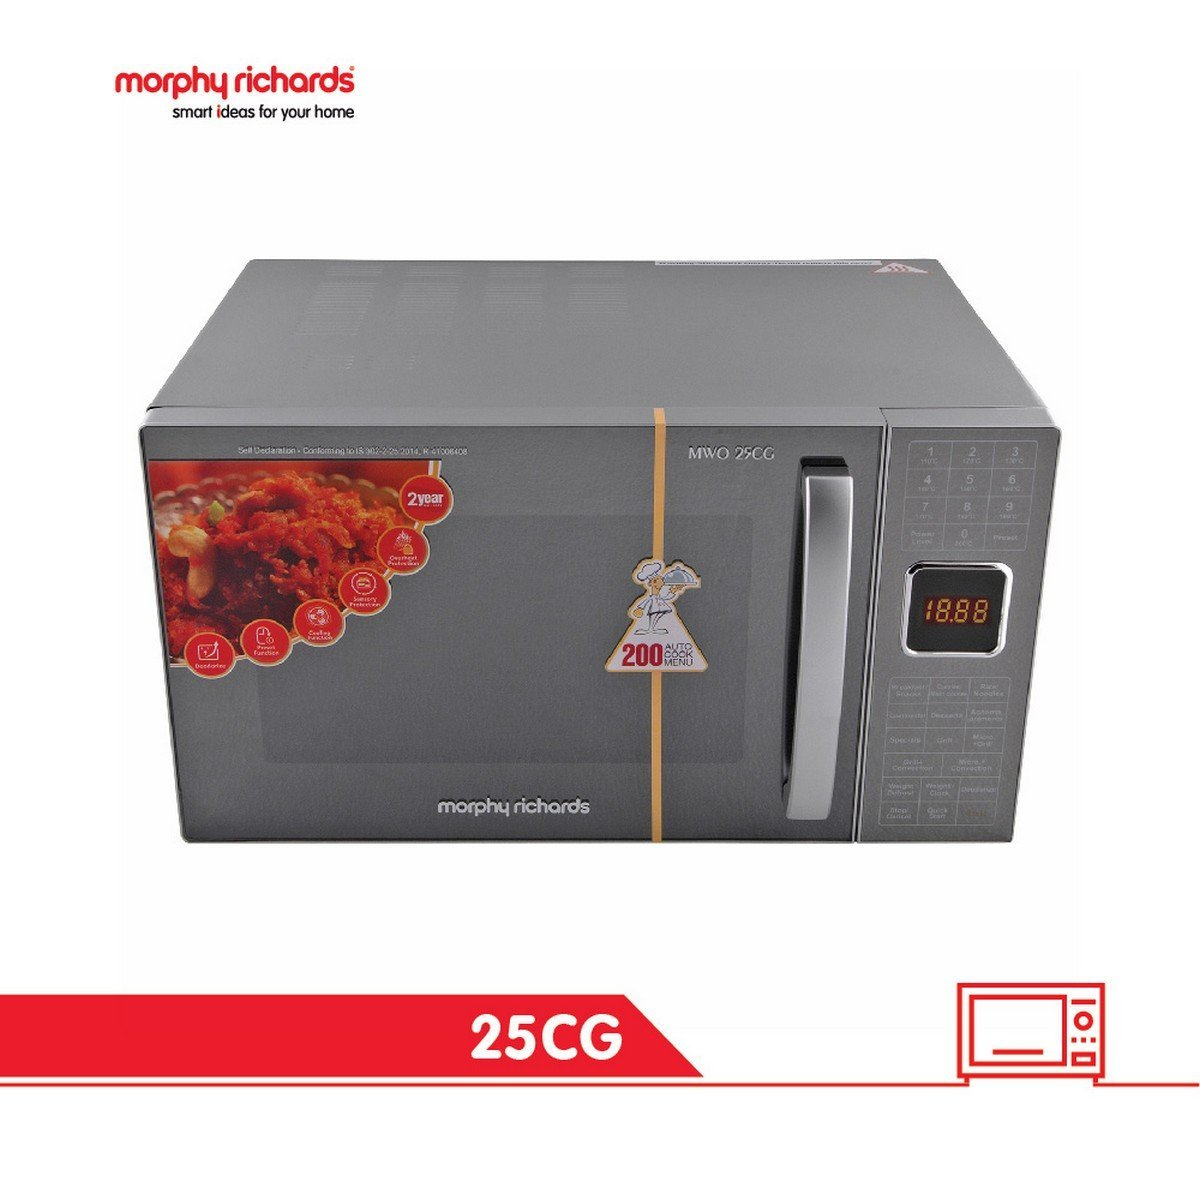 Morphy Richards 25 L Convection Microwave Oven 25 Cg With